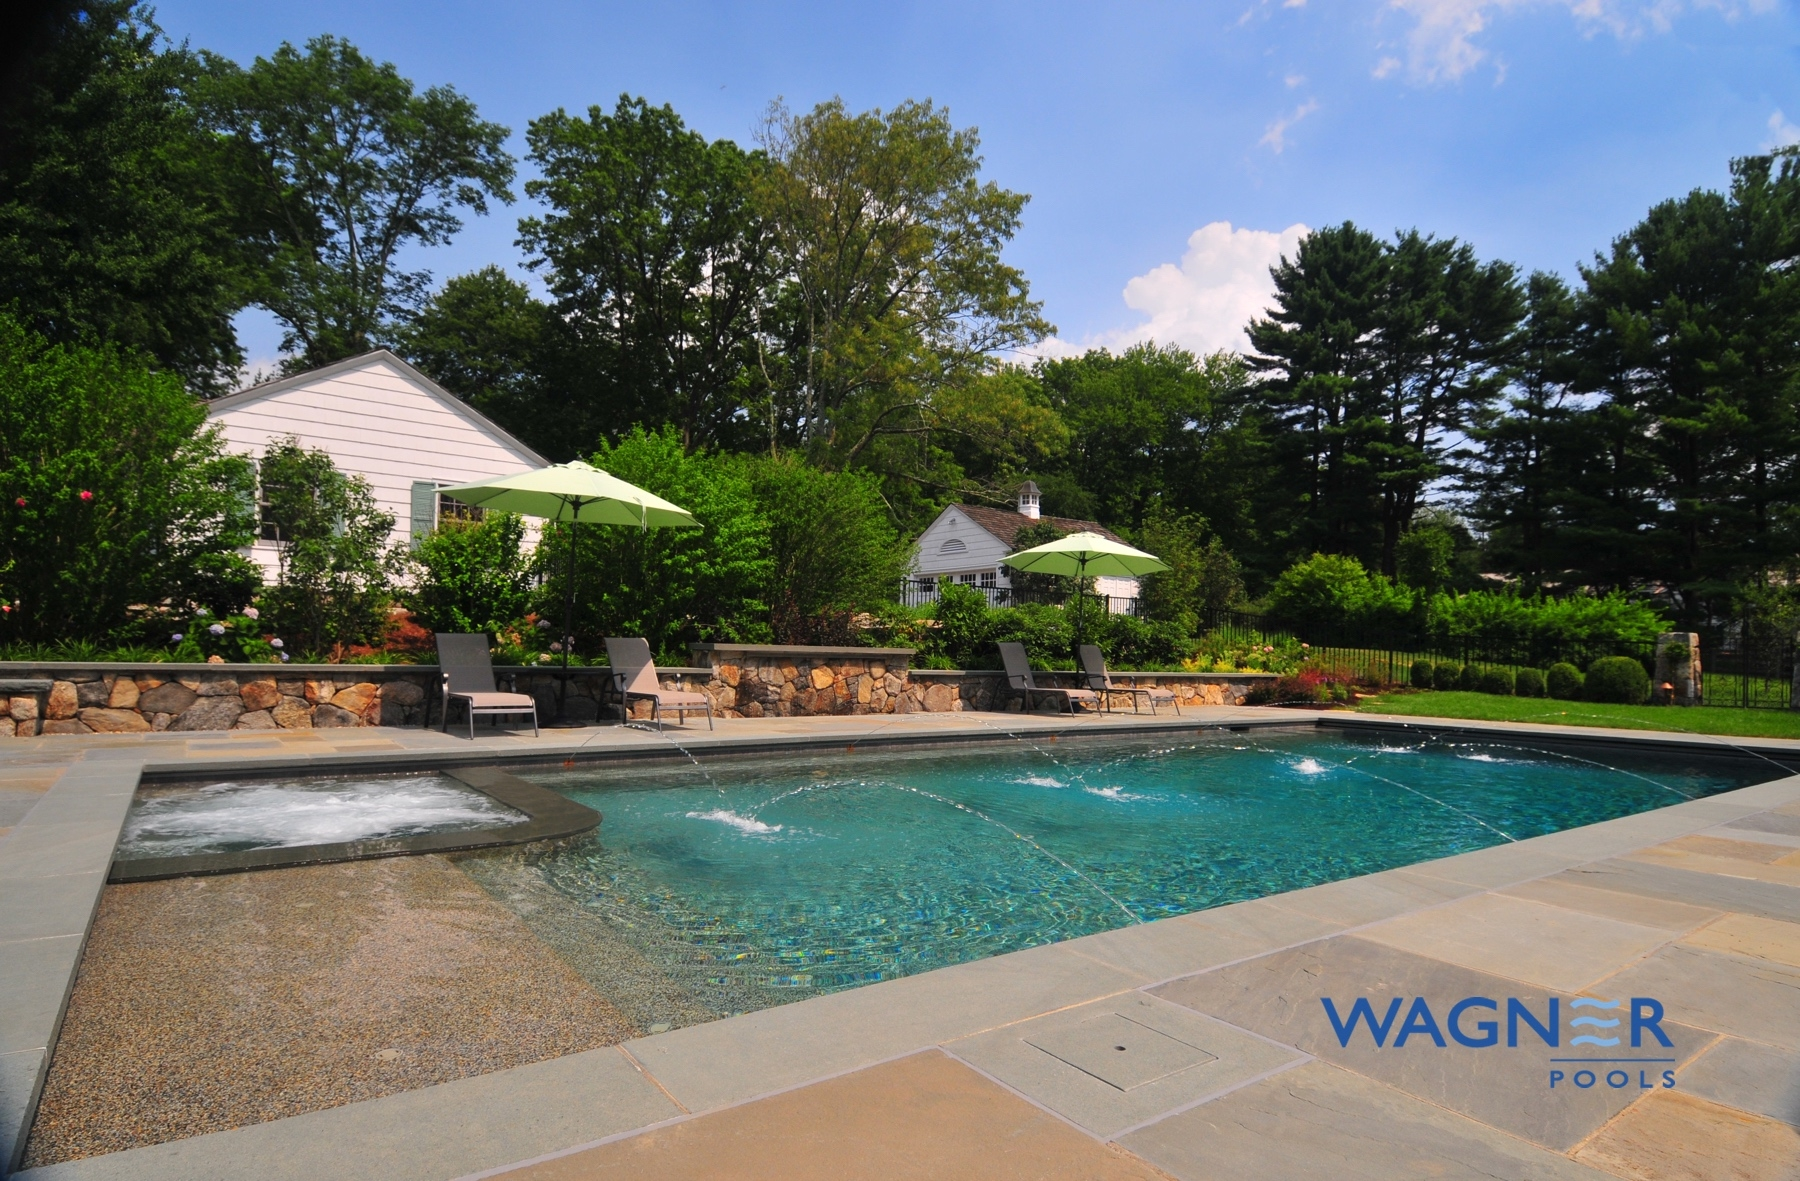 Wagner pools darien ct swimming pool contractors for Swimming pool companies